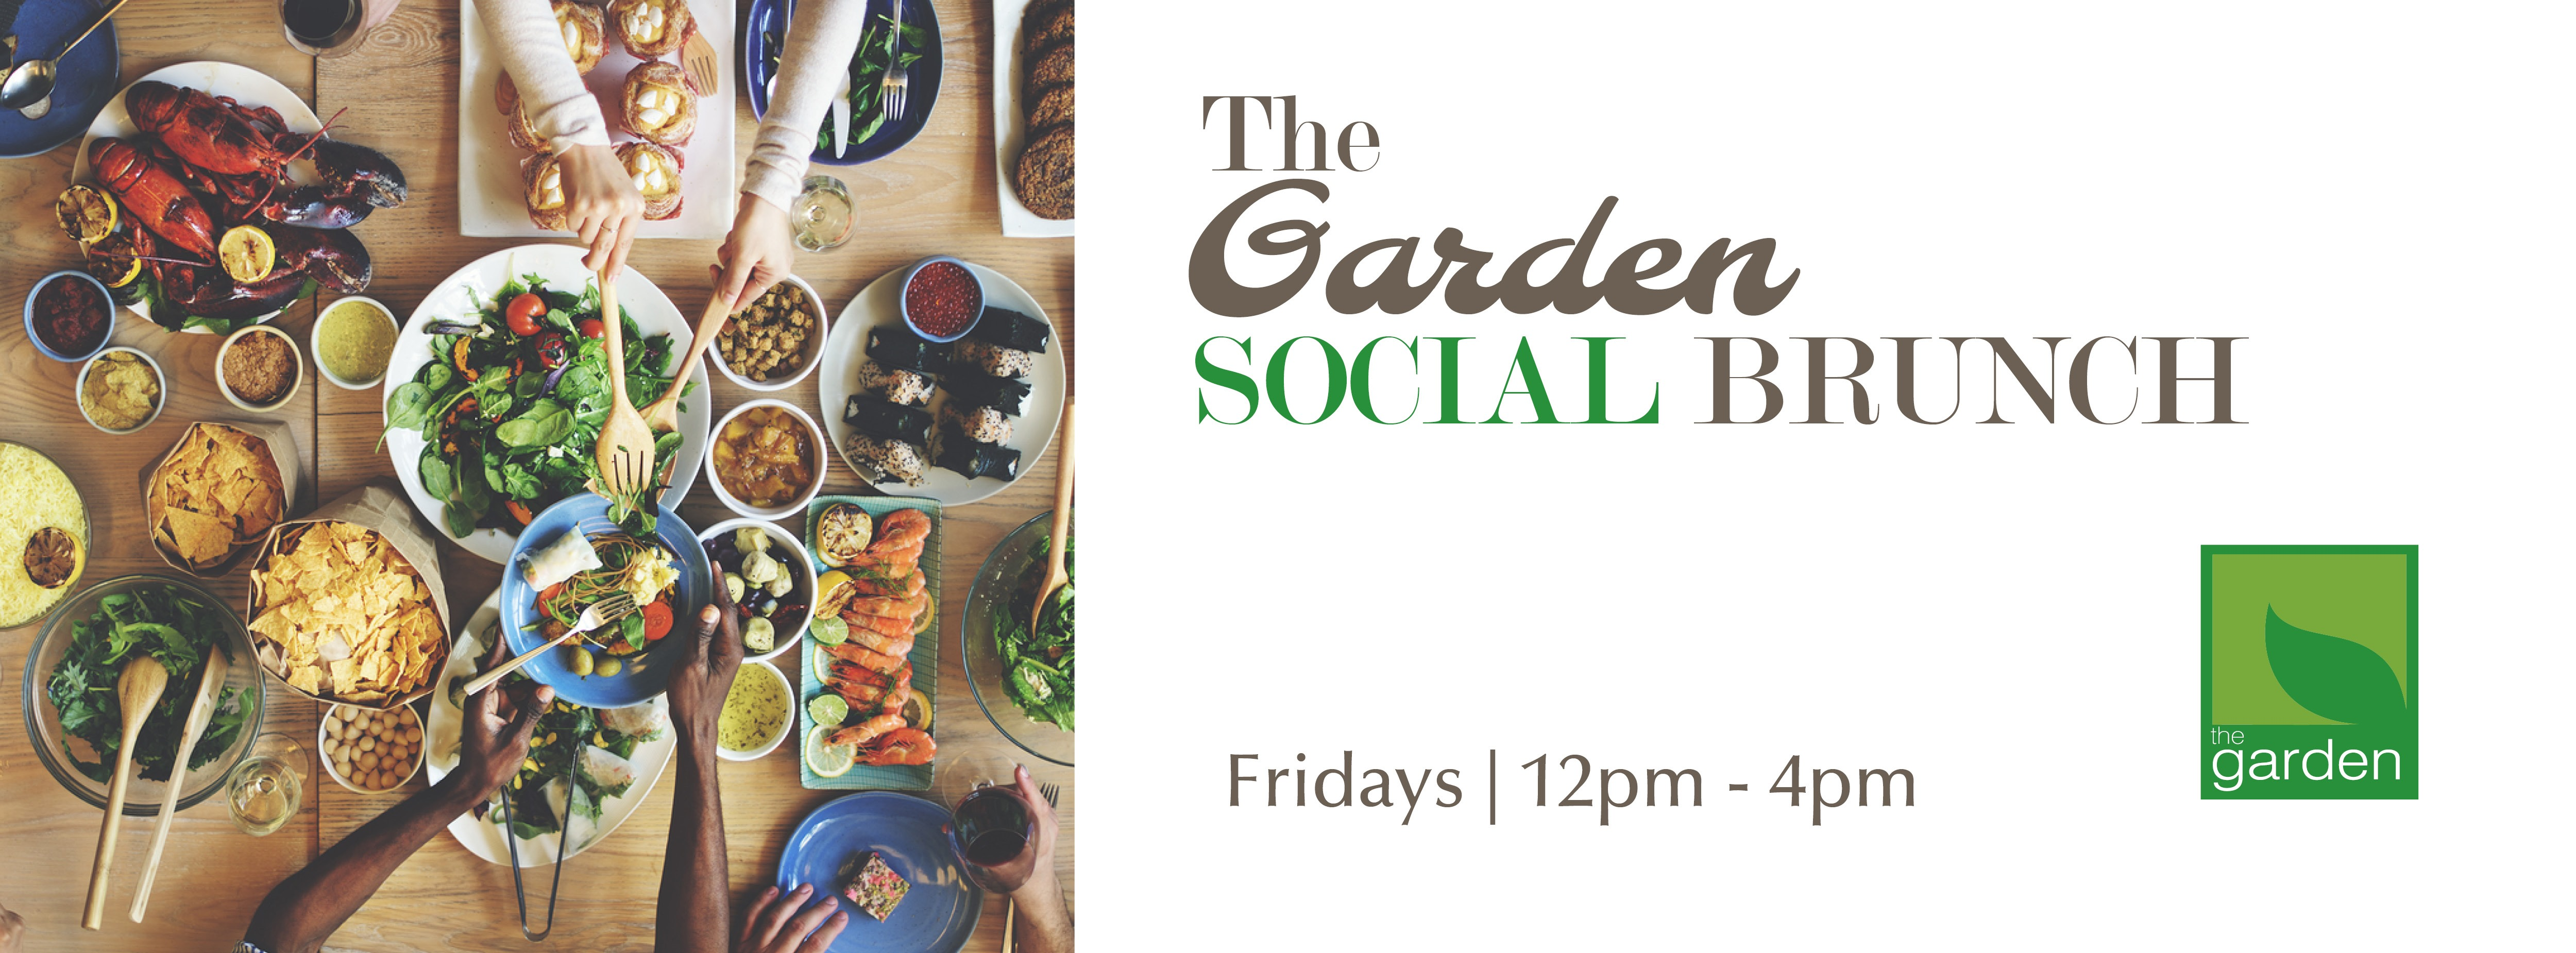 THE GARDEN SOCIAL BRUNCH